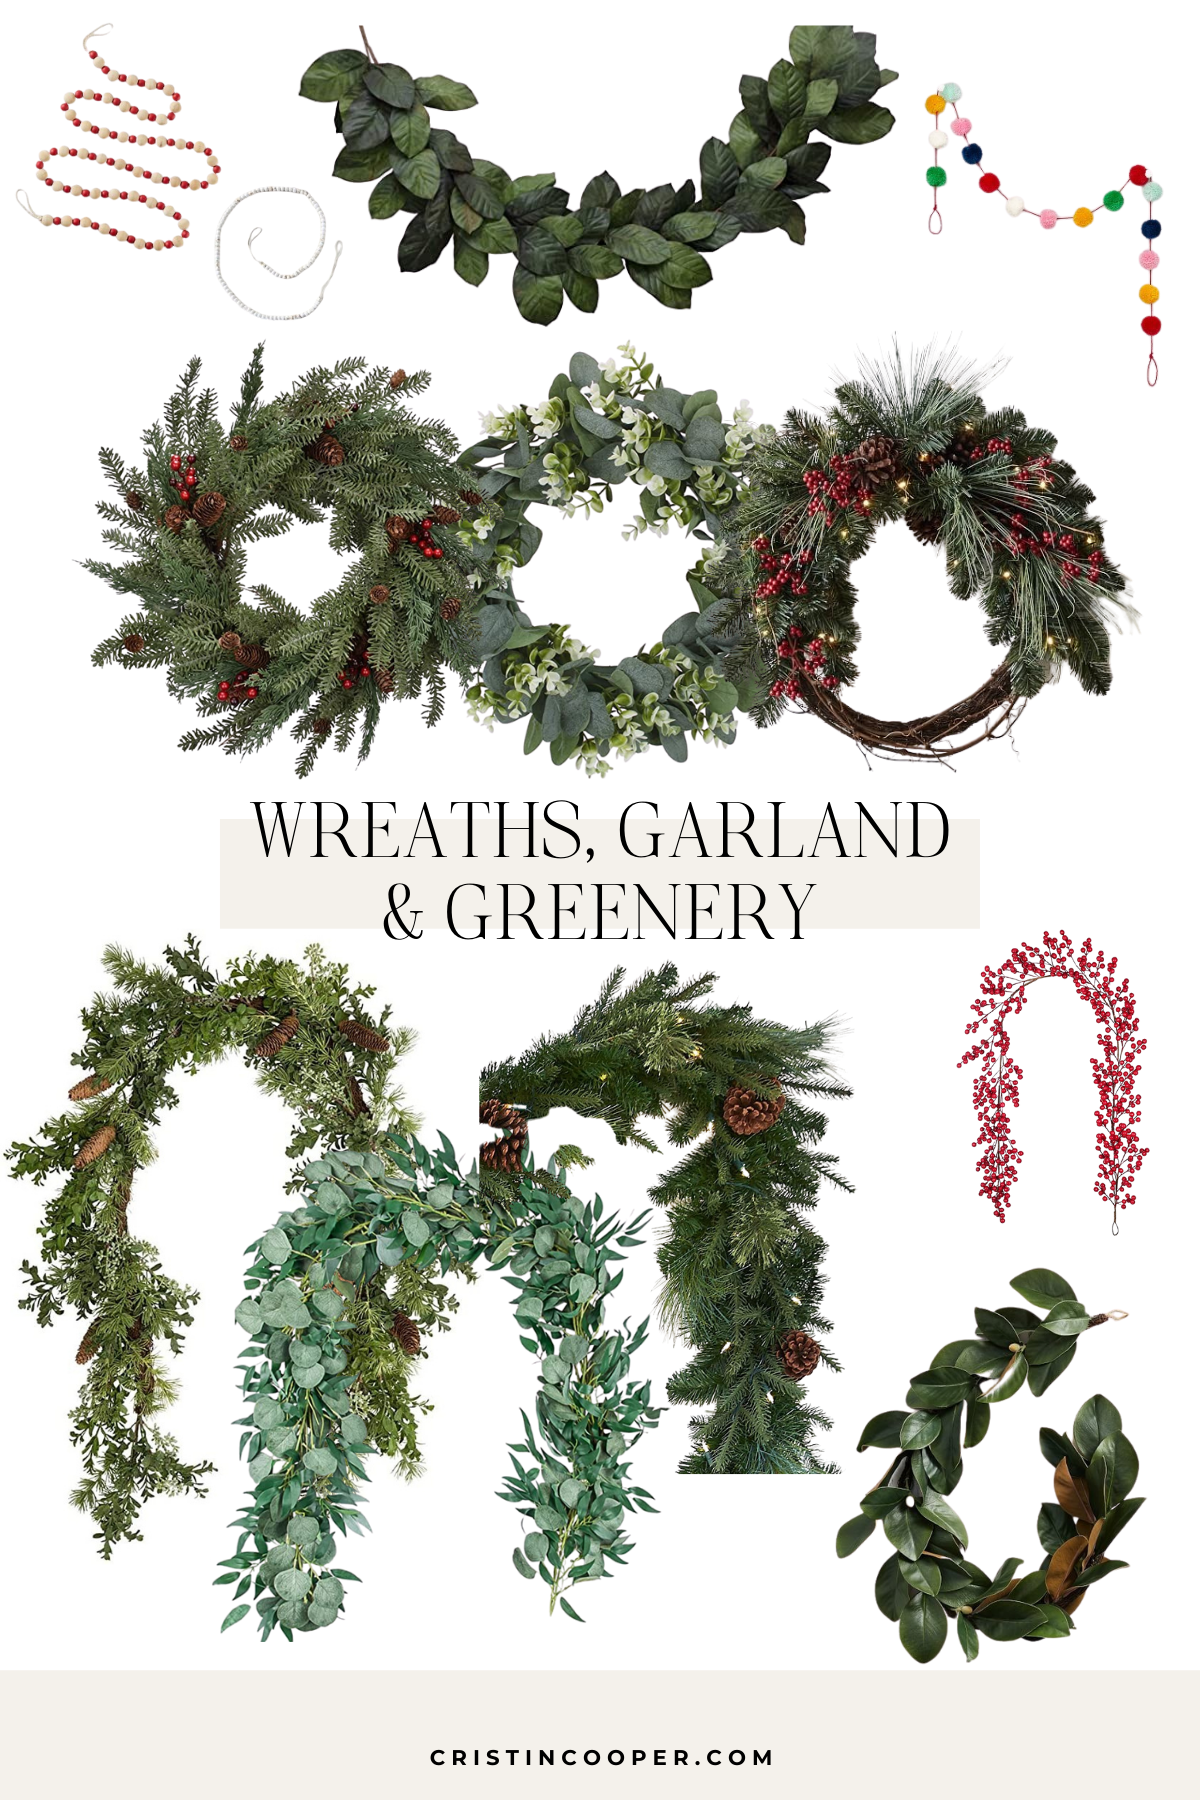 Christmas wreaths, garland and greenery sources.